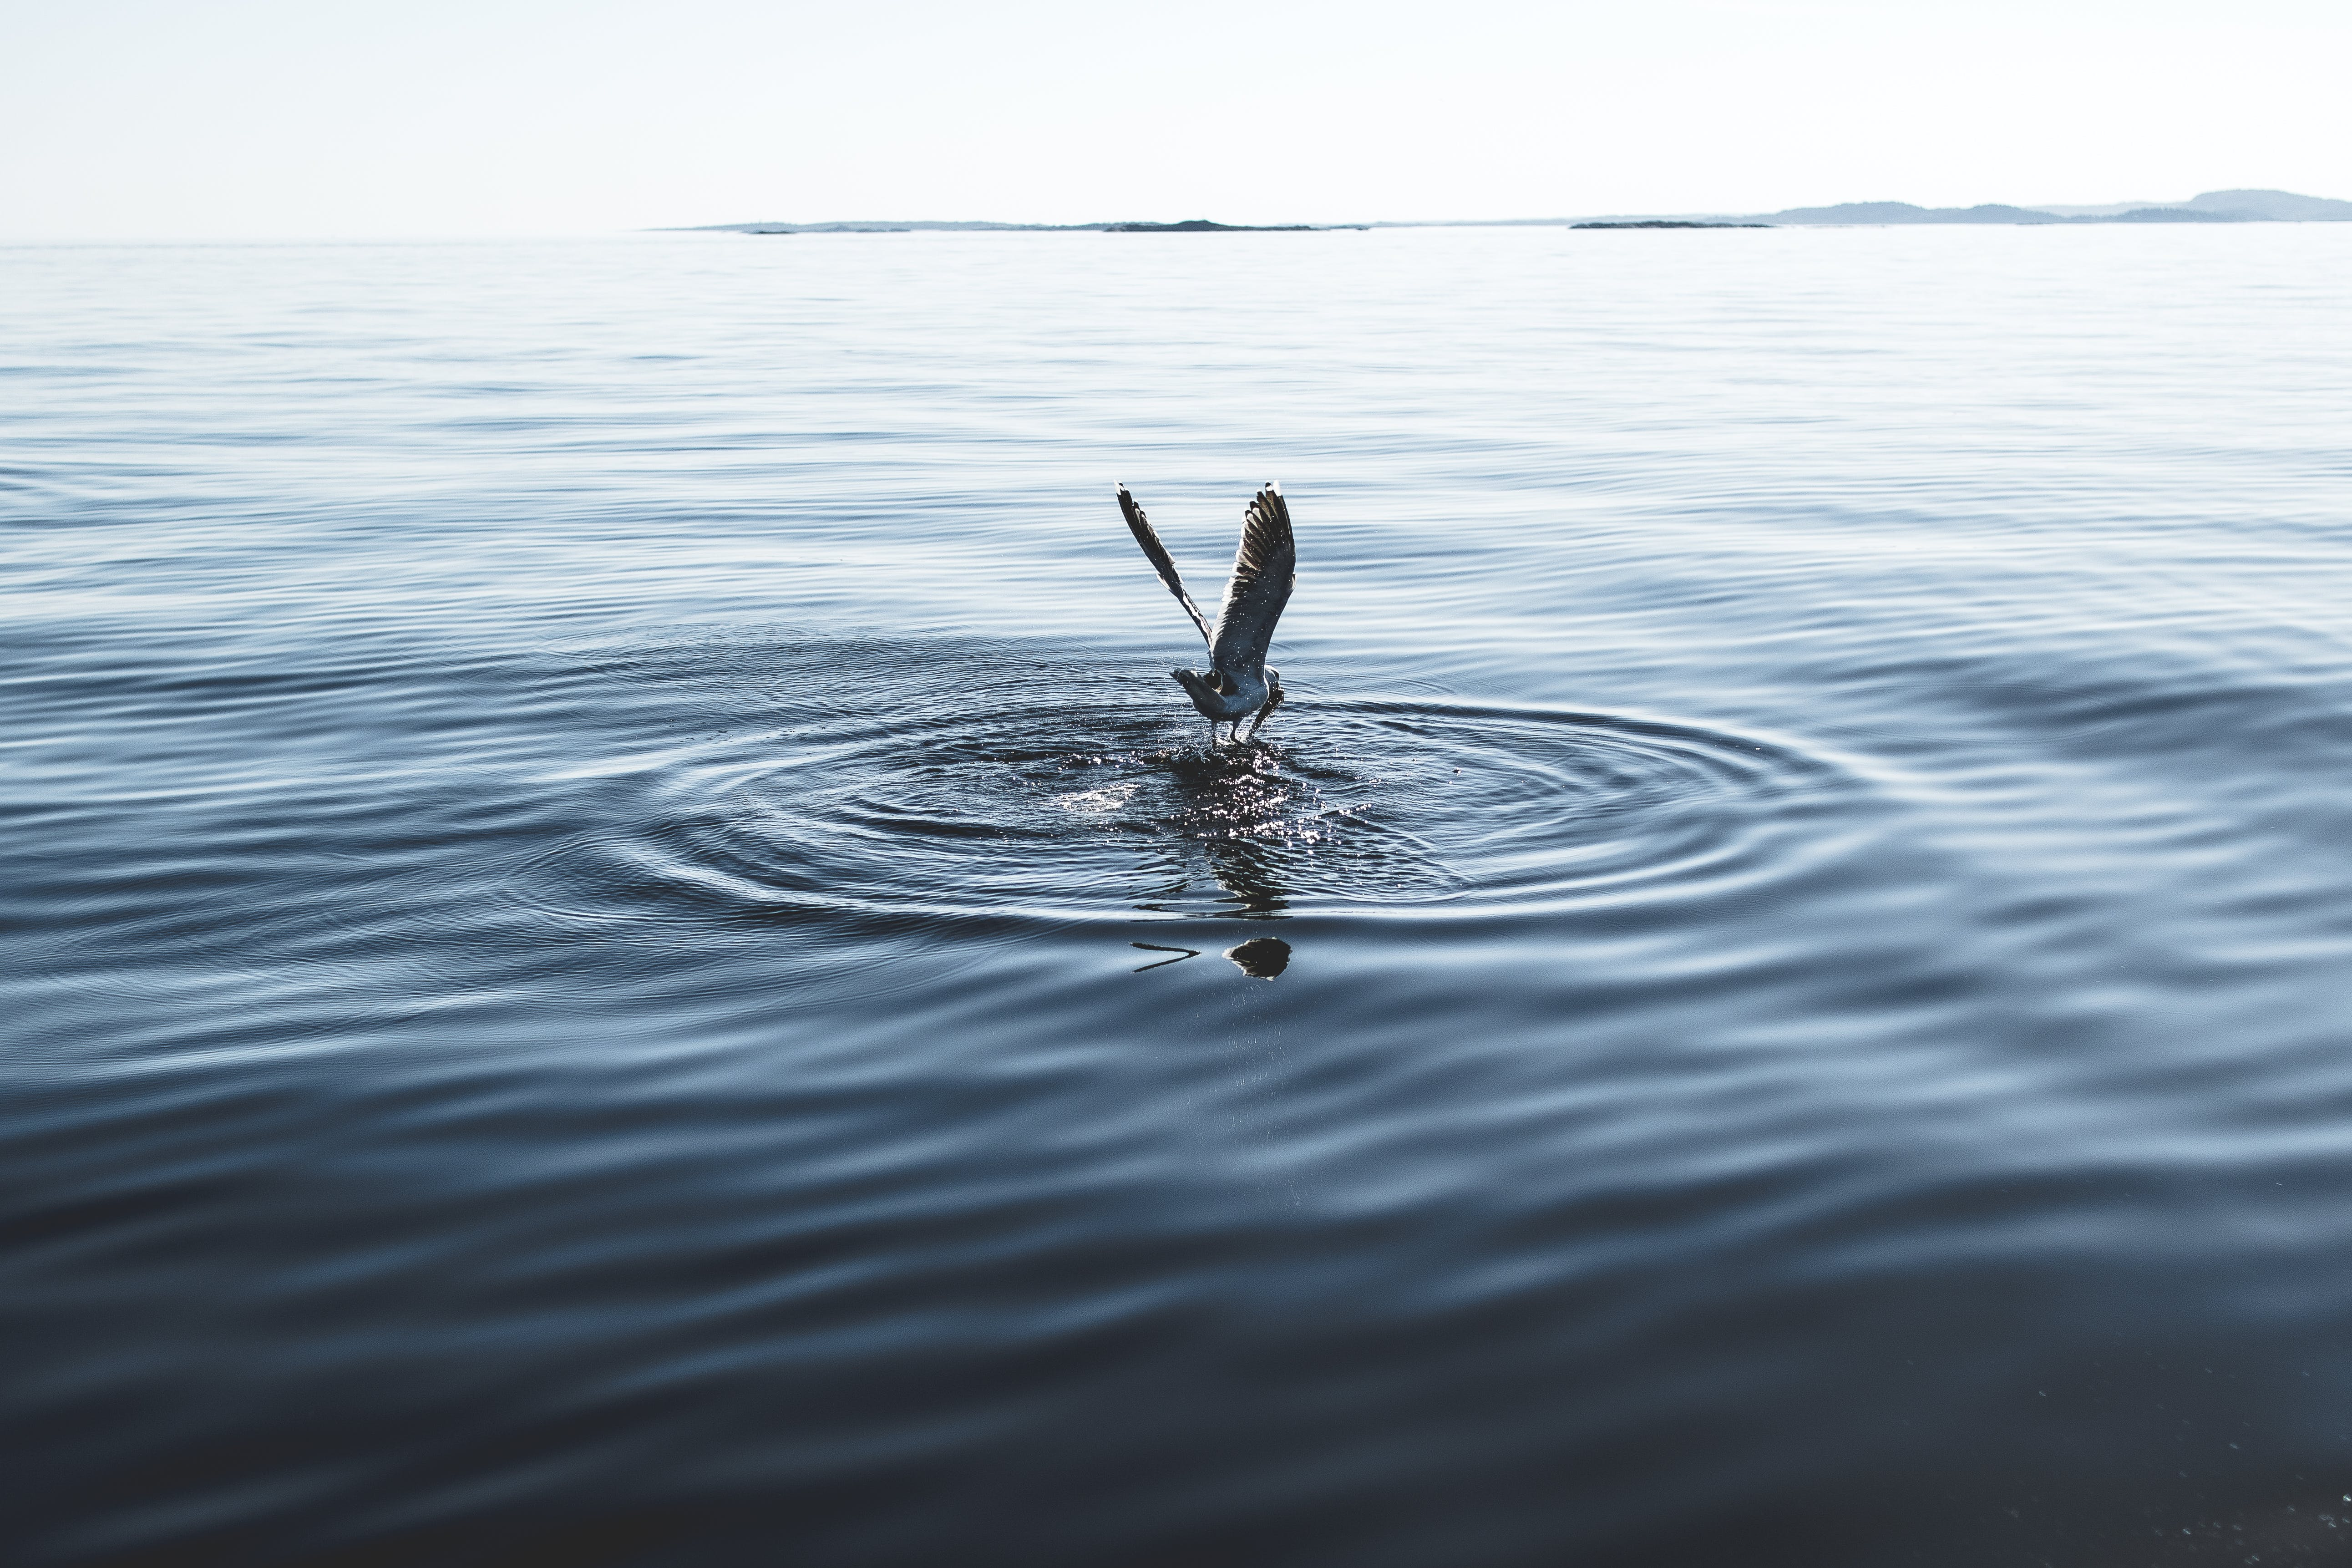 White Pelican on Body of Water